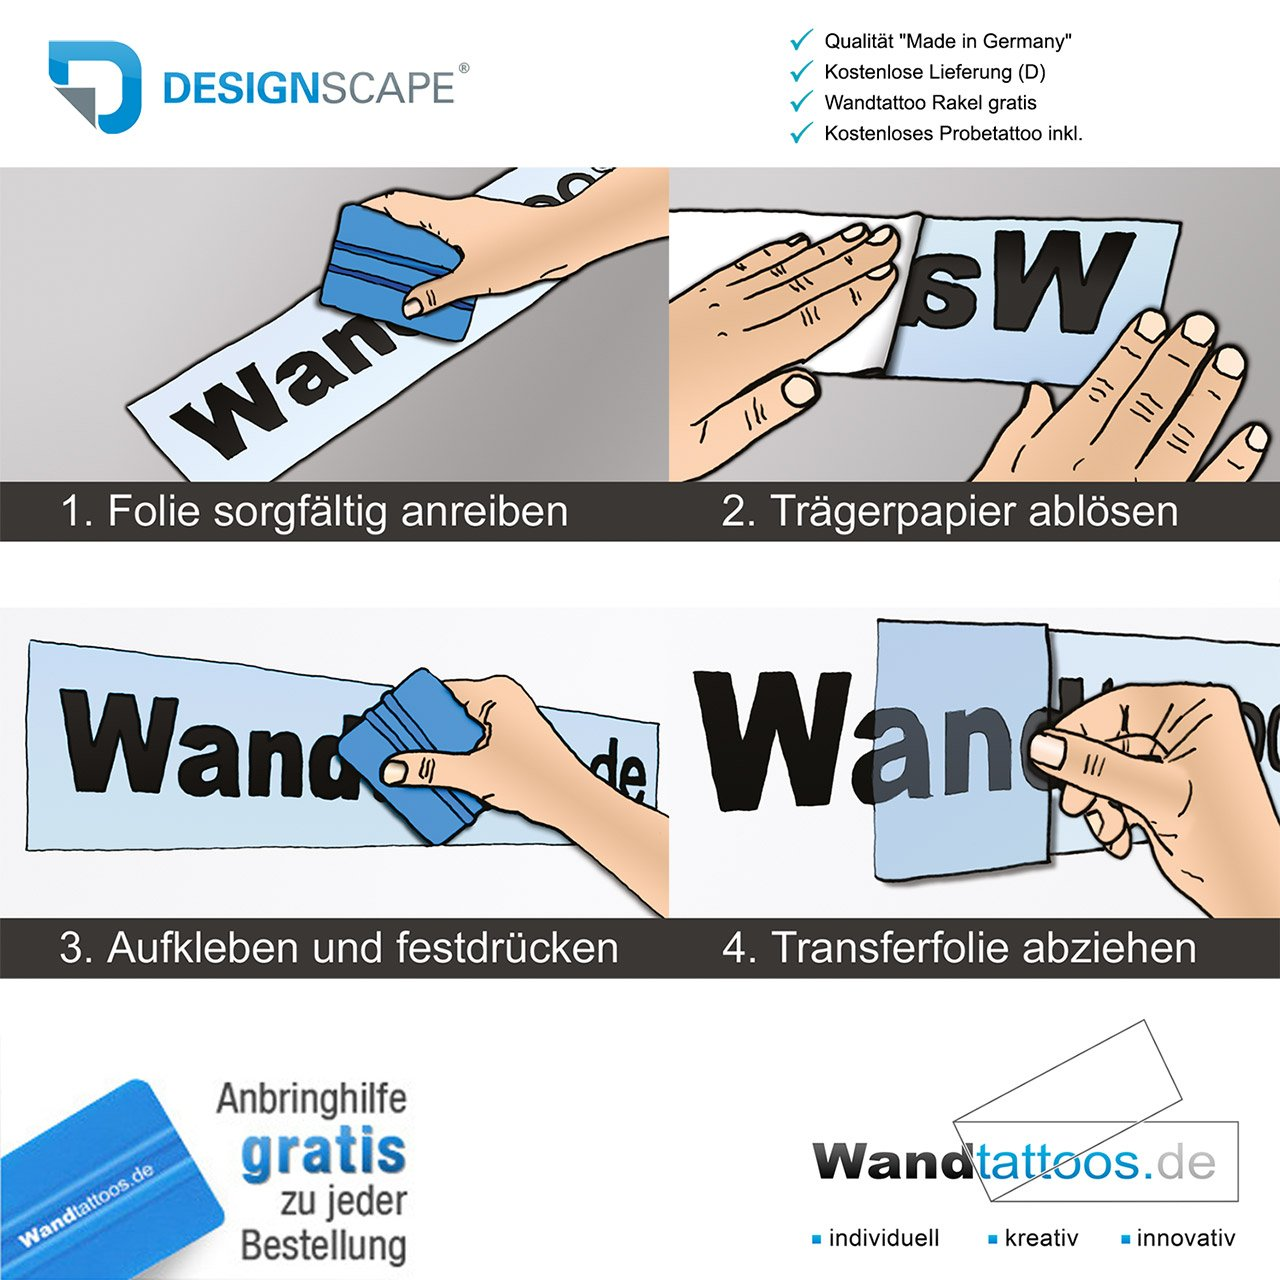 DESIGNSCAPE® Wandtattoo Training Begriffe Begriffe Begriffe   Wortwolke zur Motivation   Wandtattoo Sport 120 x 62 cm (Breite x Höhe) dunkelrot DW803439-M-F21 B072HH67WW Wandtattoos & Wandbilder 9bd40e